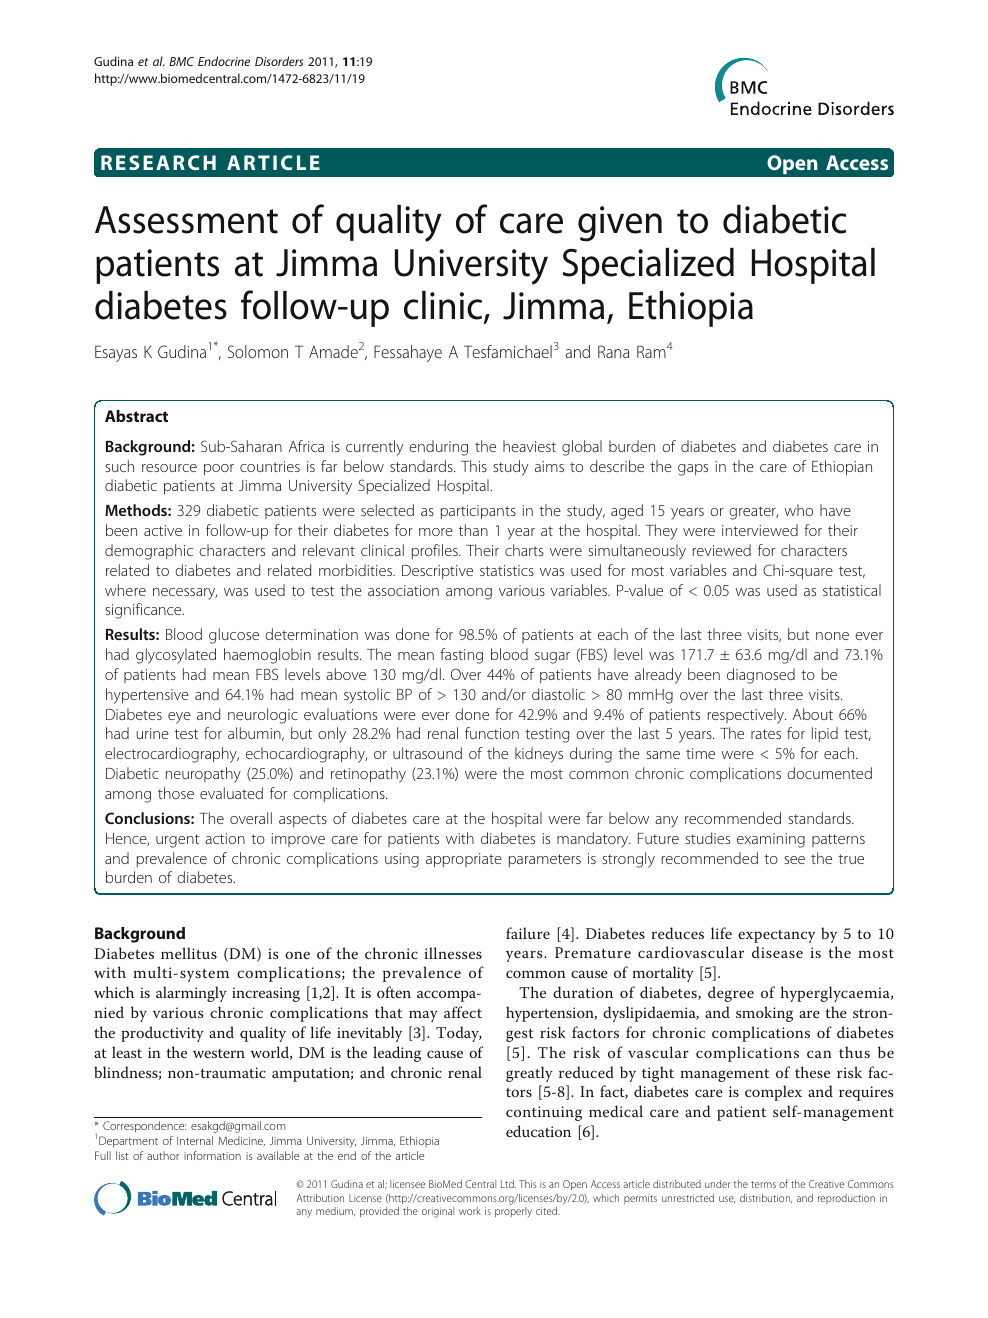 Assessment of quality of care given to diabetic patients at